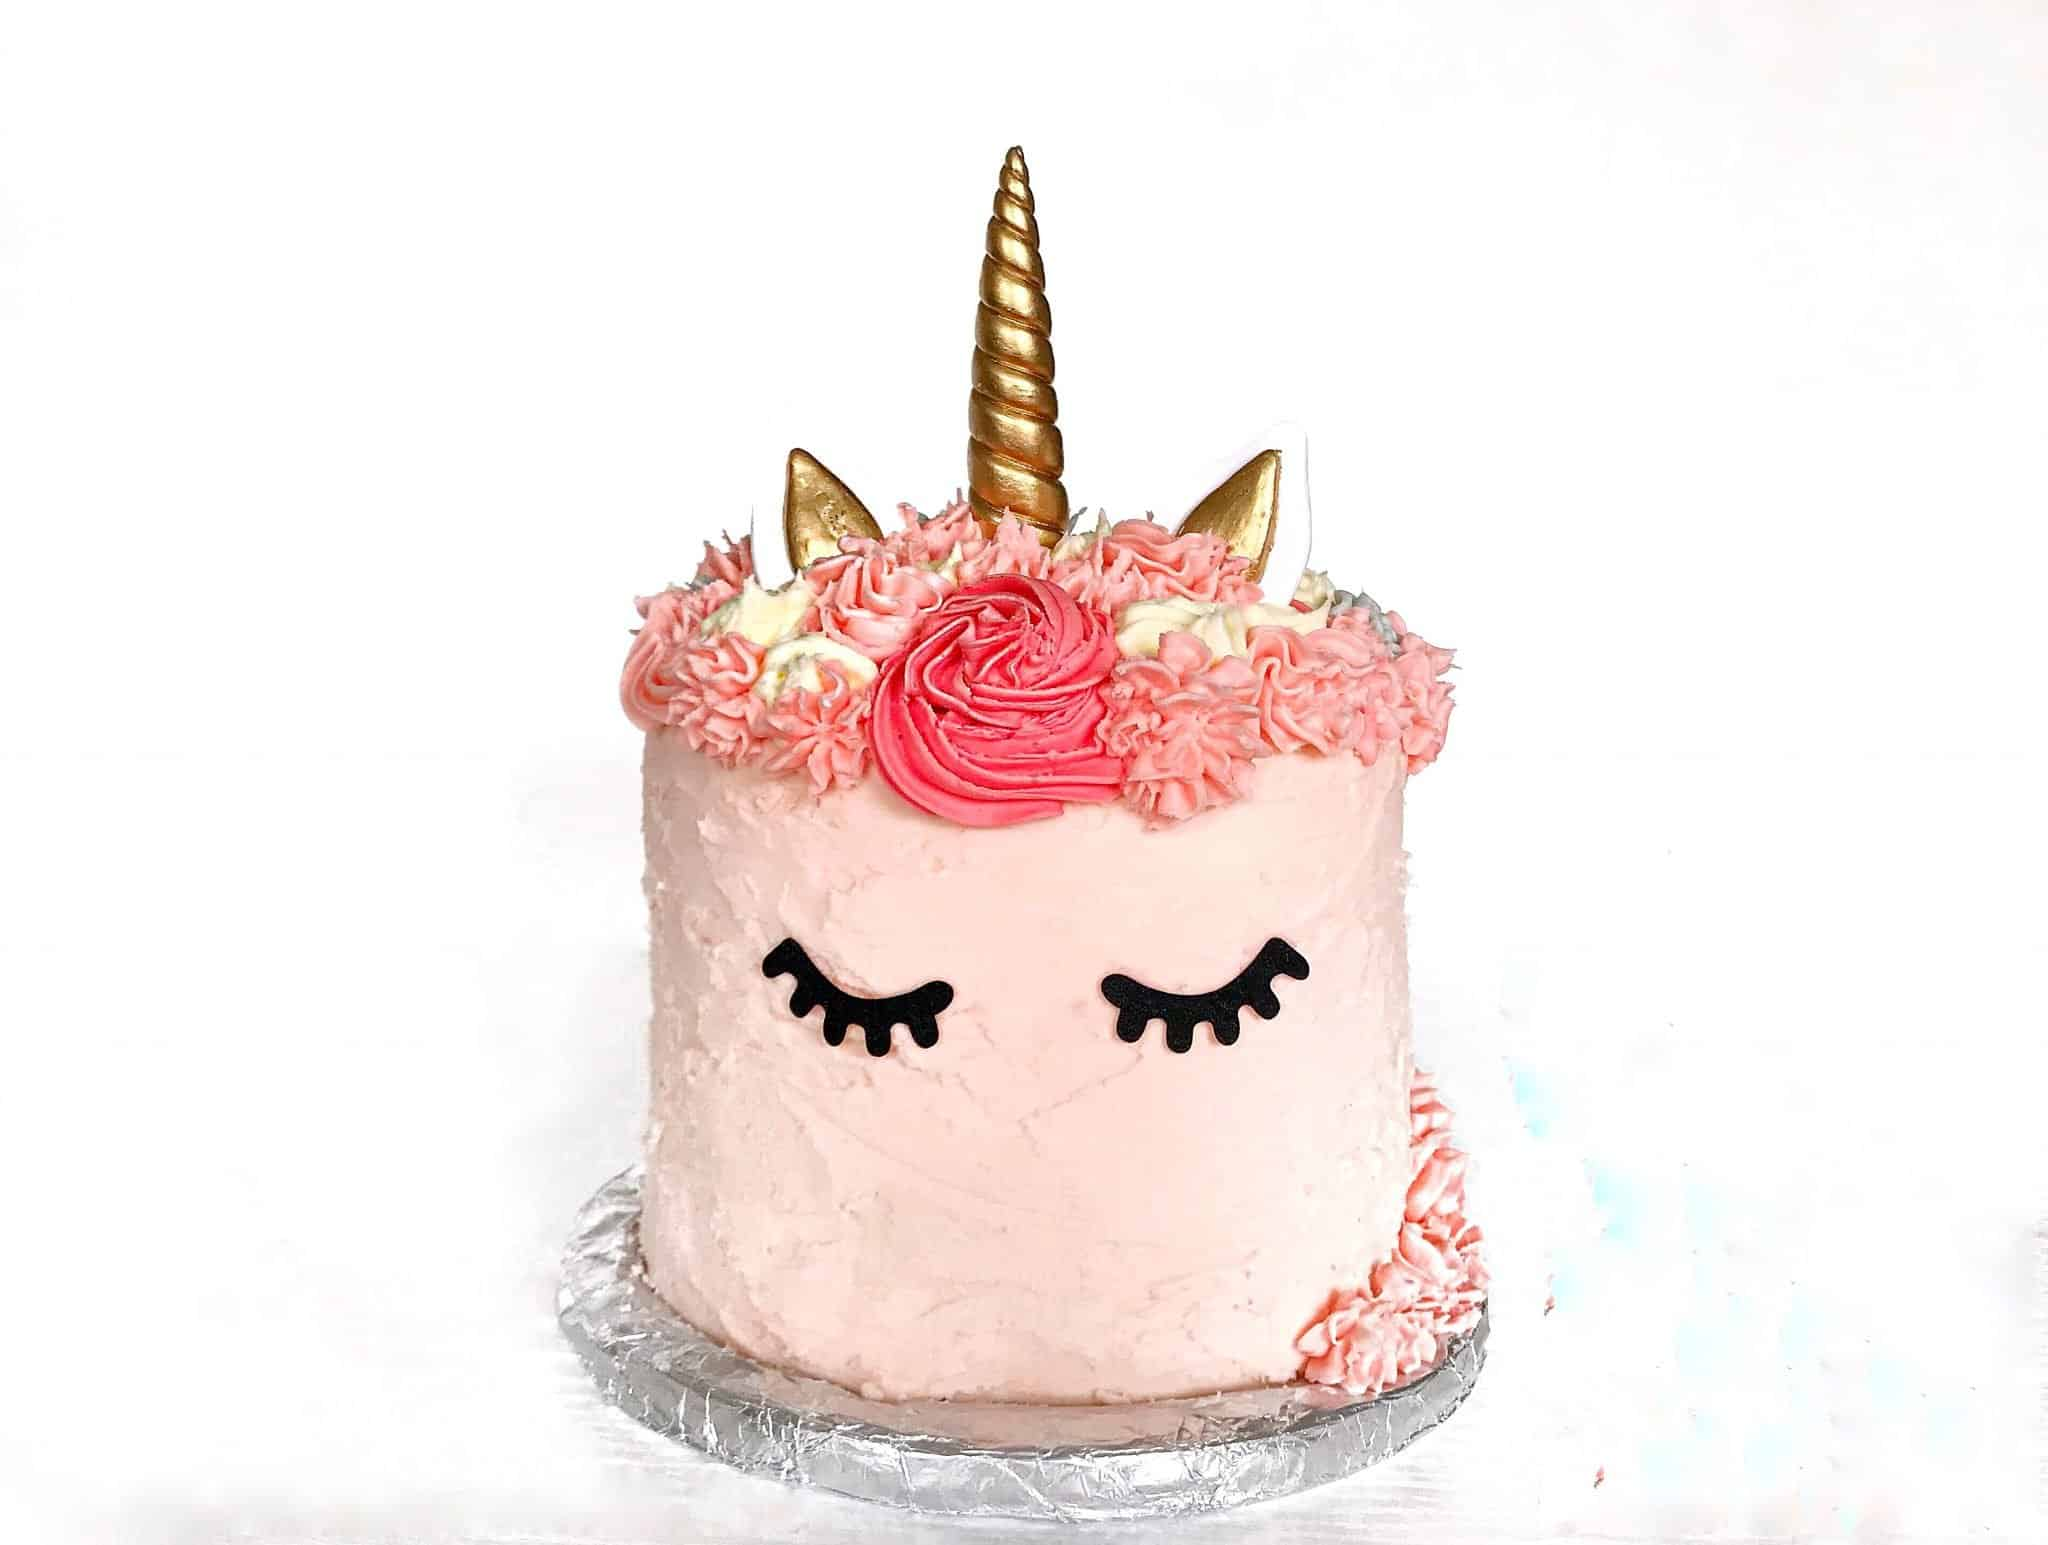 How to make a cute rainbow unicorn cake